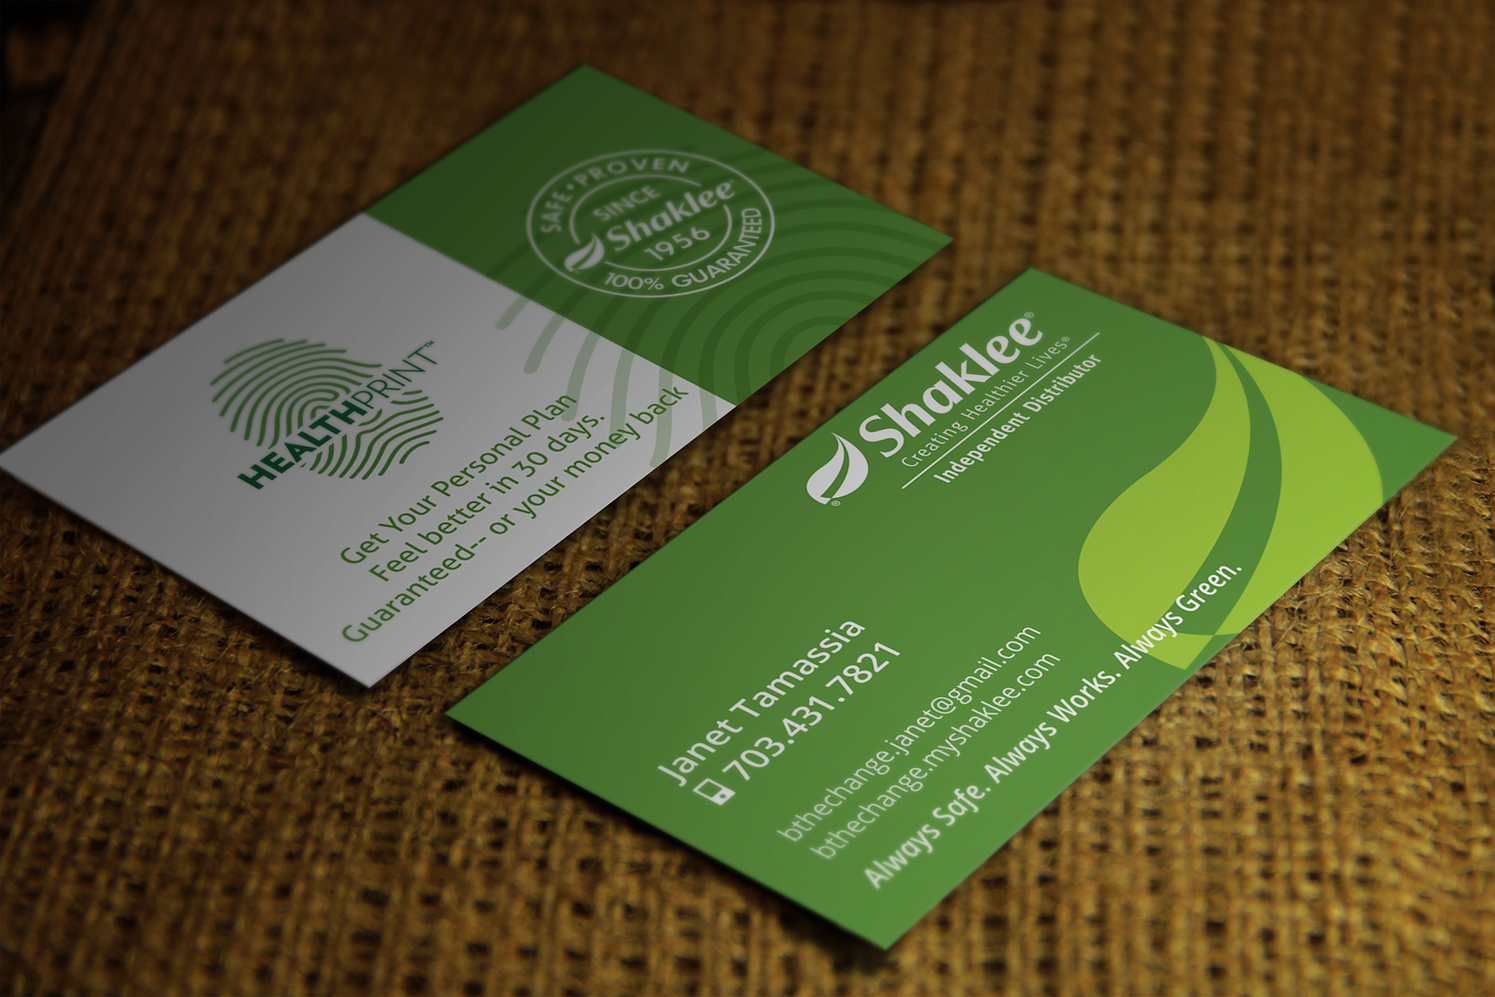 Business Card Design By Seoyst For Nutrition Consultant Needs Eye Catching And Conversation Starter